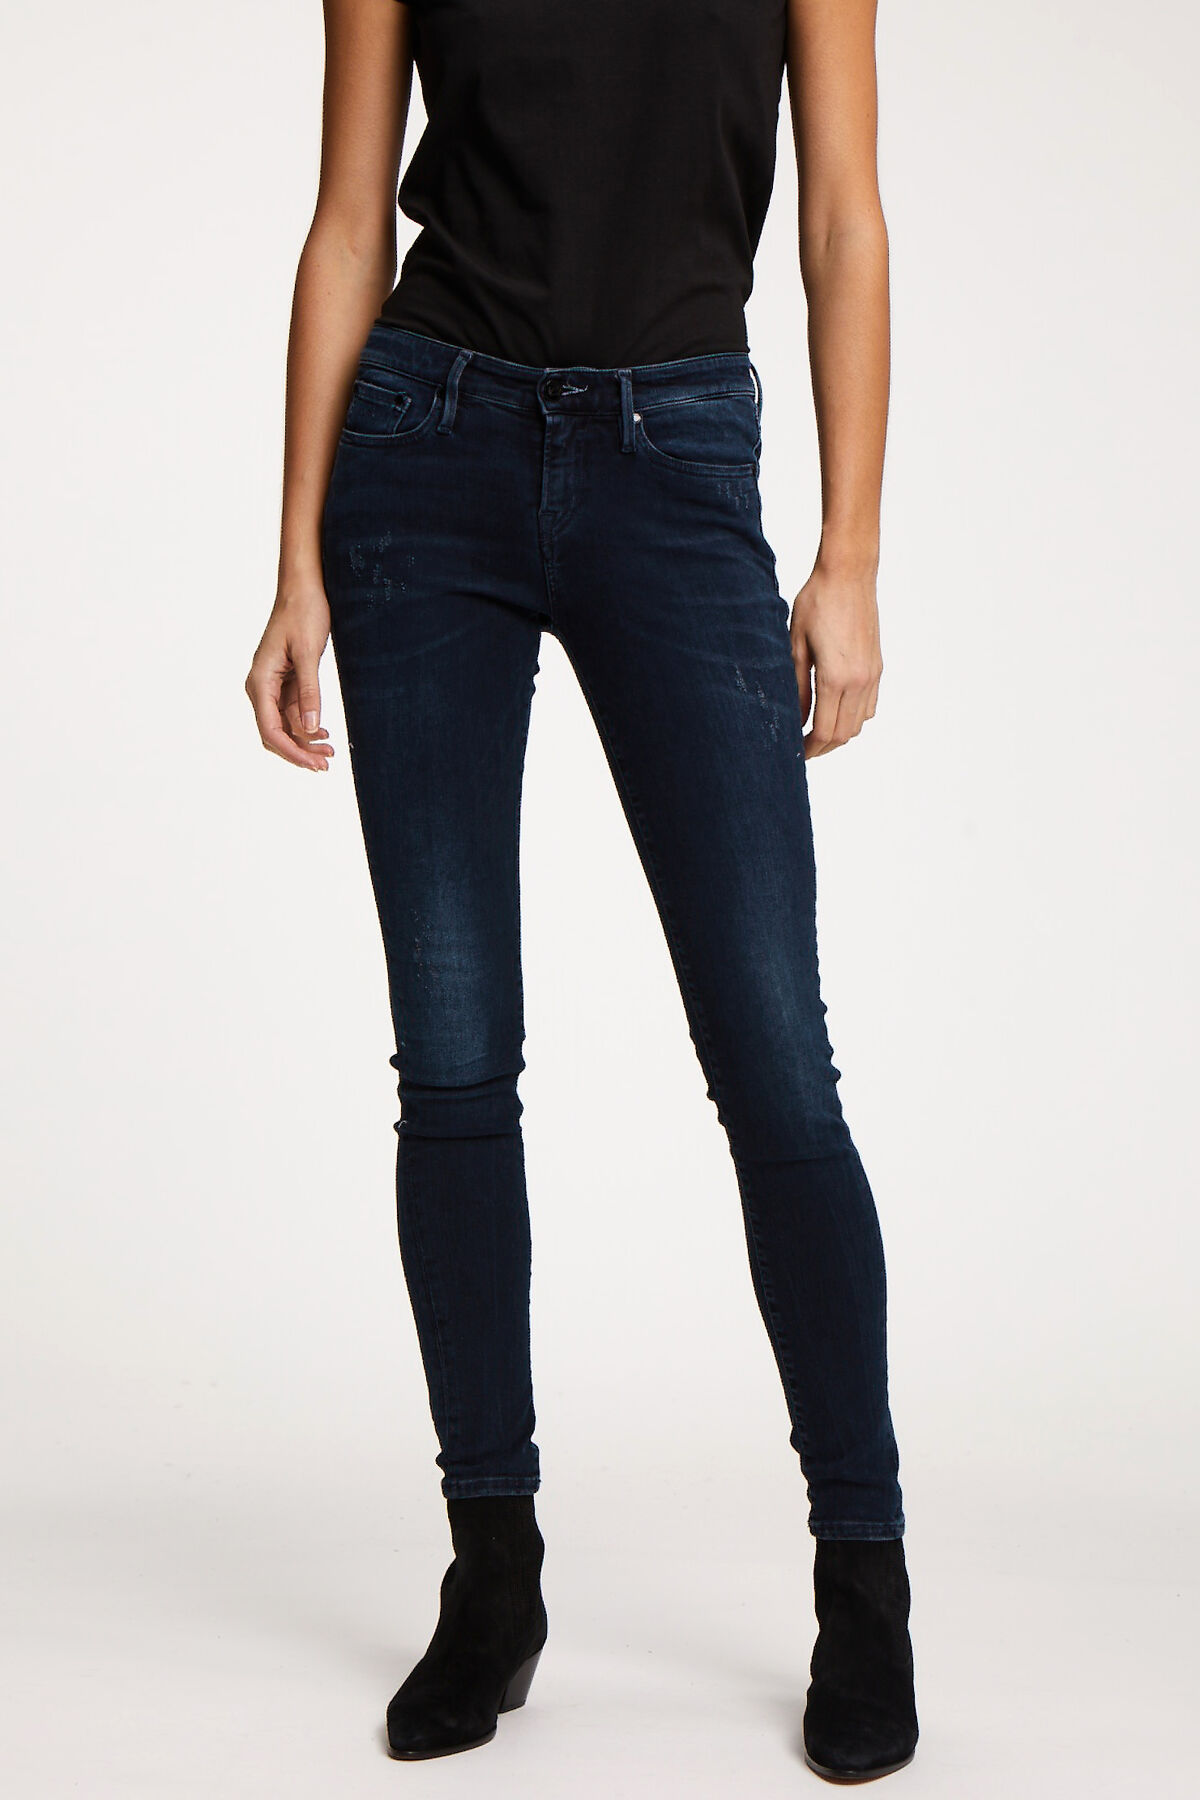 SHARP Dark Indigo Denim - Mid-rise, Skinny Fit